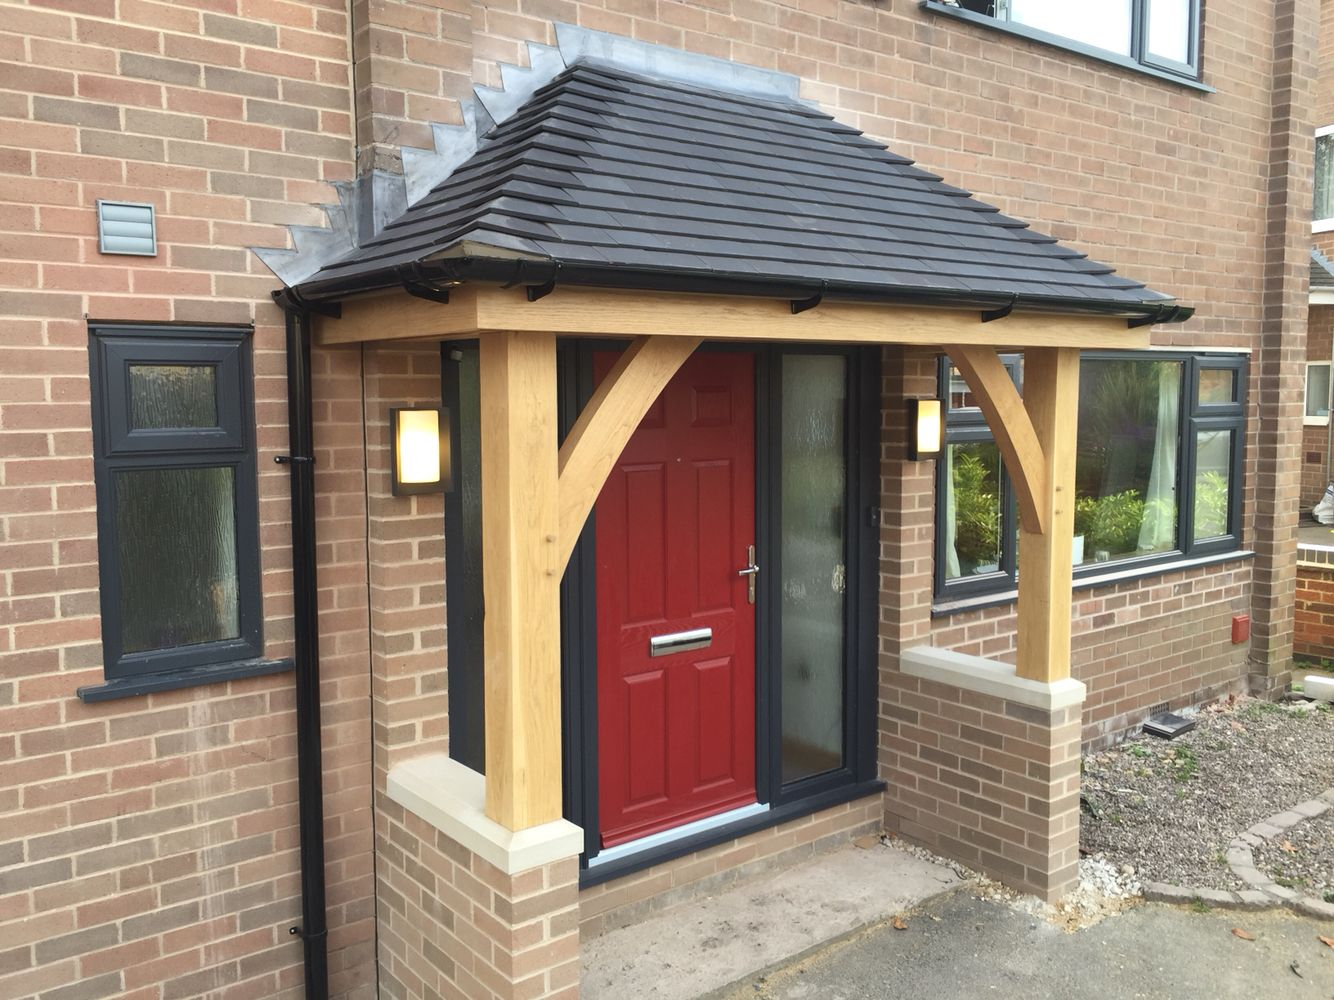 Green Oak Porch At Stramshall With A More Modern Style And A Hipped Roof Porch Design House With Porch Porch Roof Styles